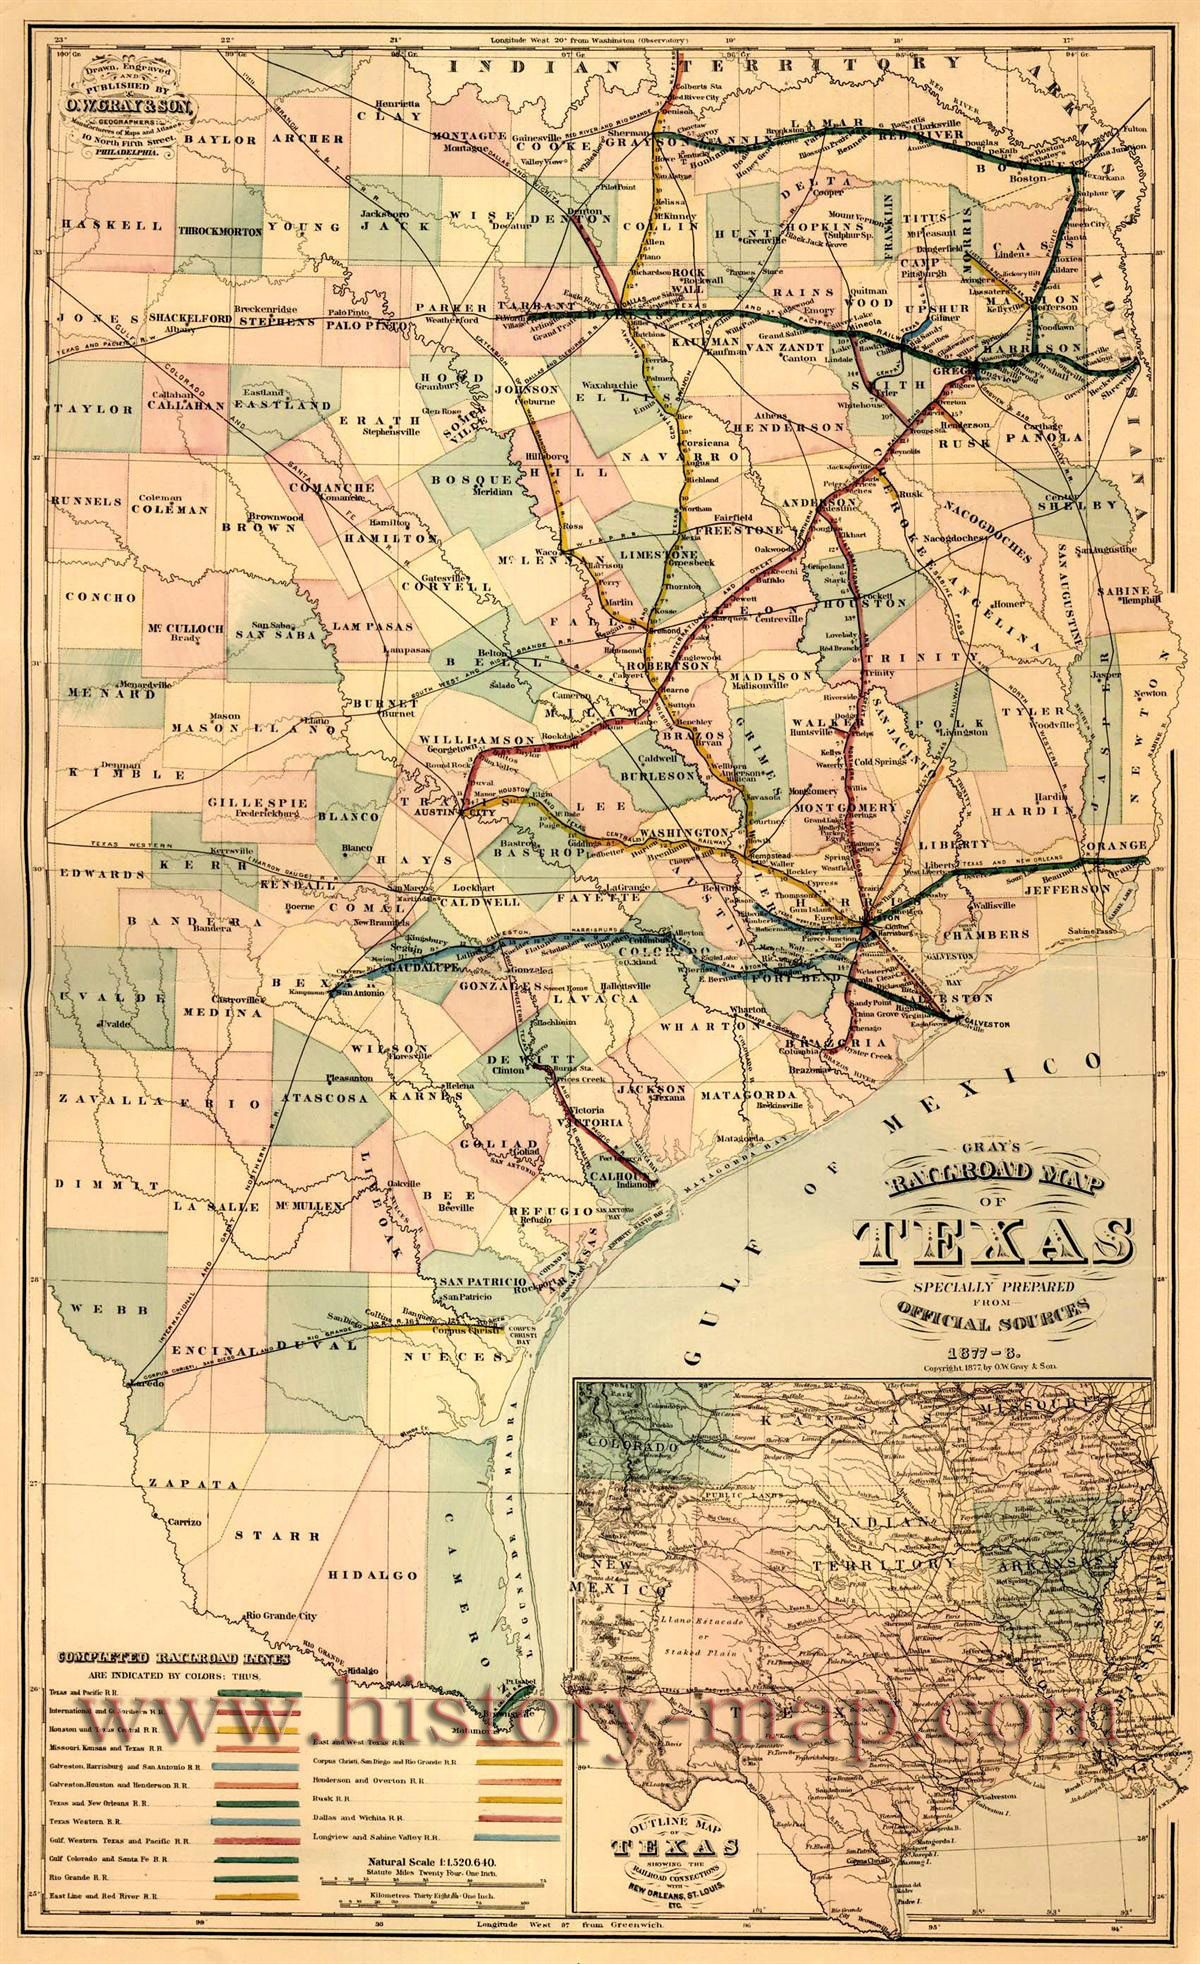 Texas History Classroom Decorations ~ Texas railroad map rpg art western and